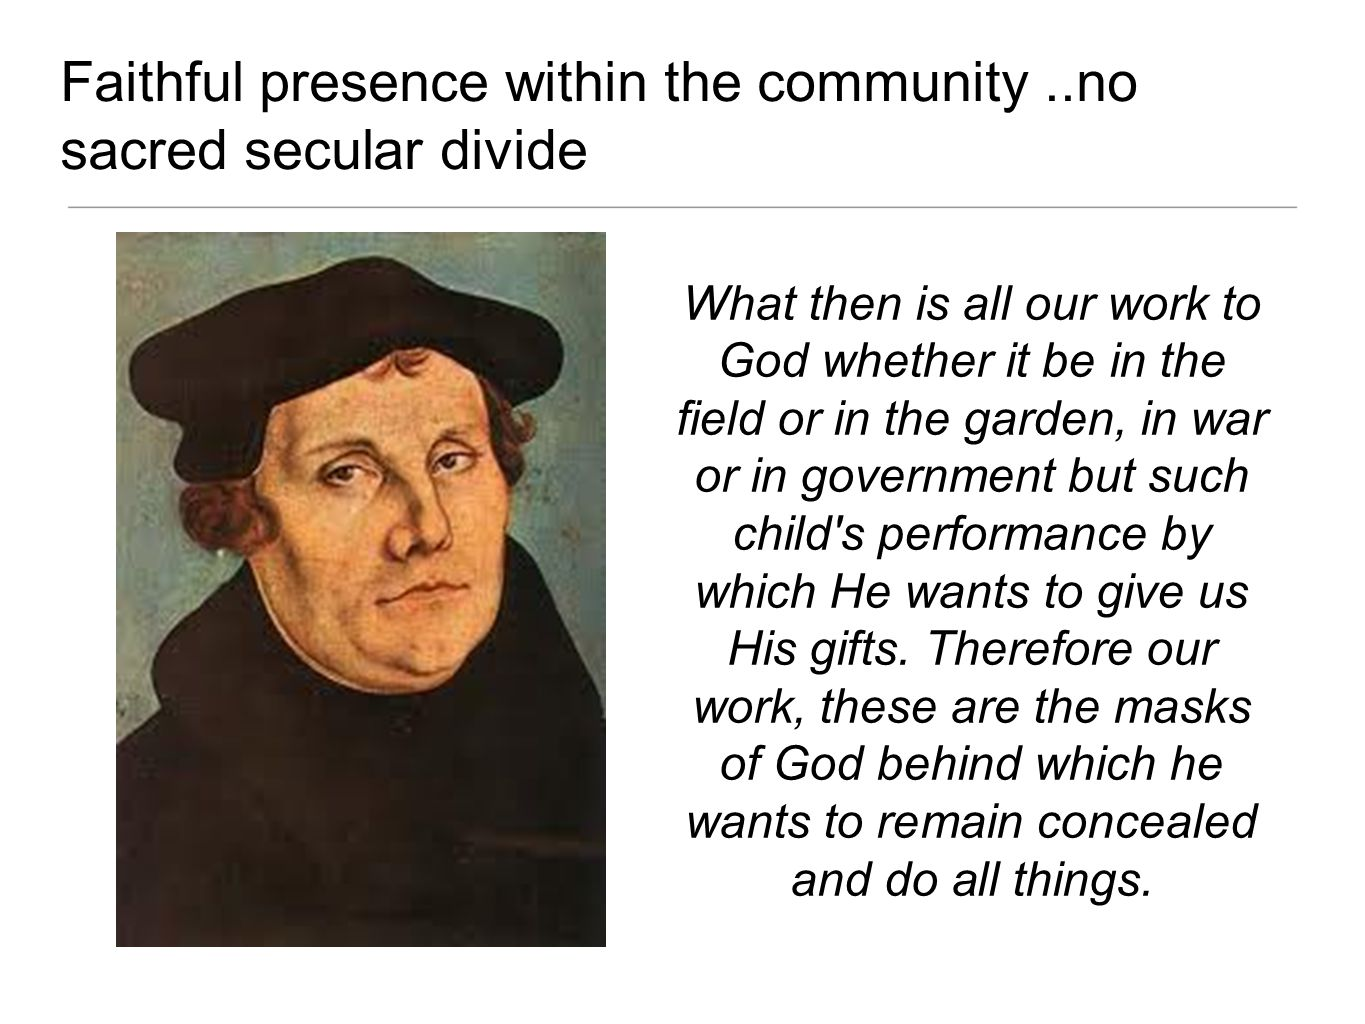 Faithful presence within the community..no sacred secular divide What then is all our work to God whether it be in the field or in the garden, in war